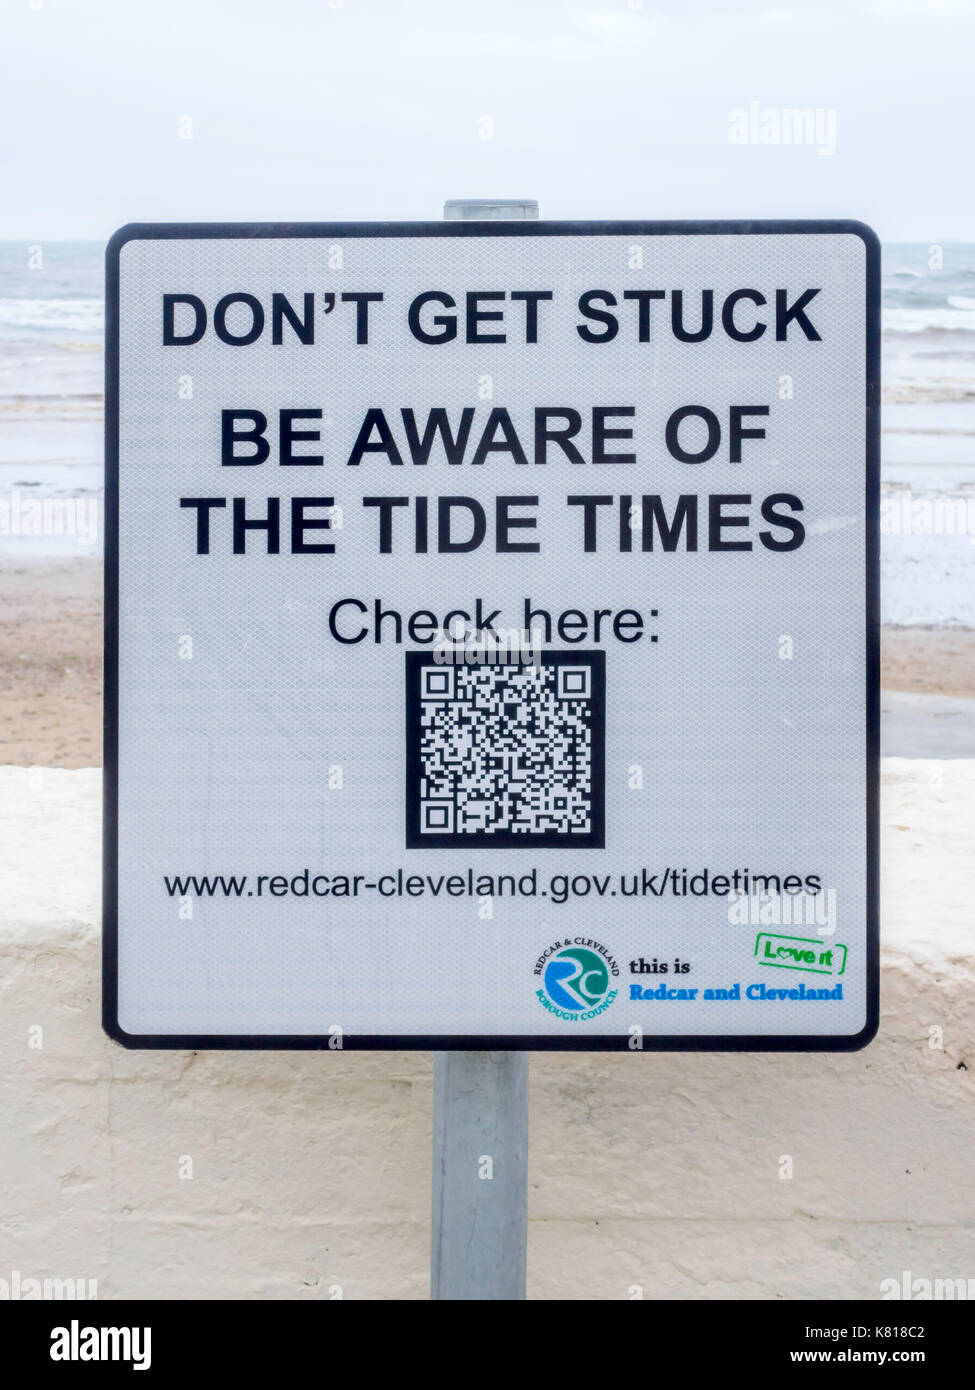 Tide table stock photos tide table stock images alamy notice by saltburn beach at a notorious danger spot warning against being cut off by the nvjuhfo Choice Image